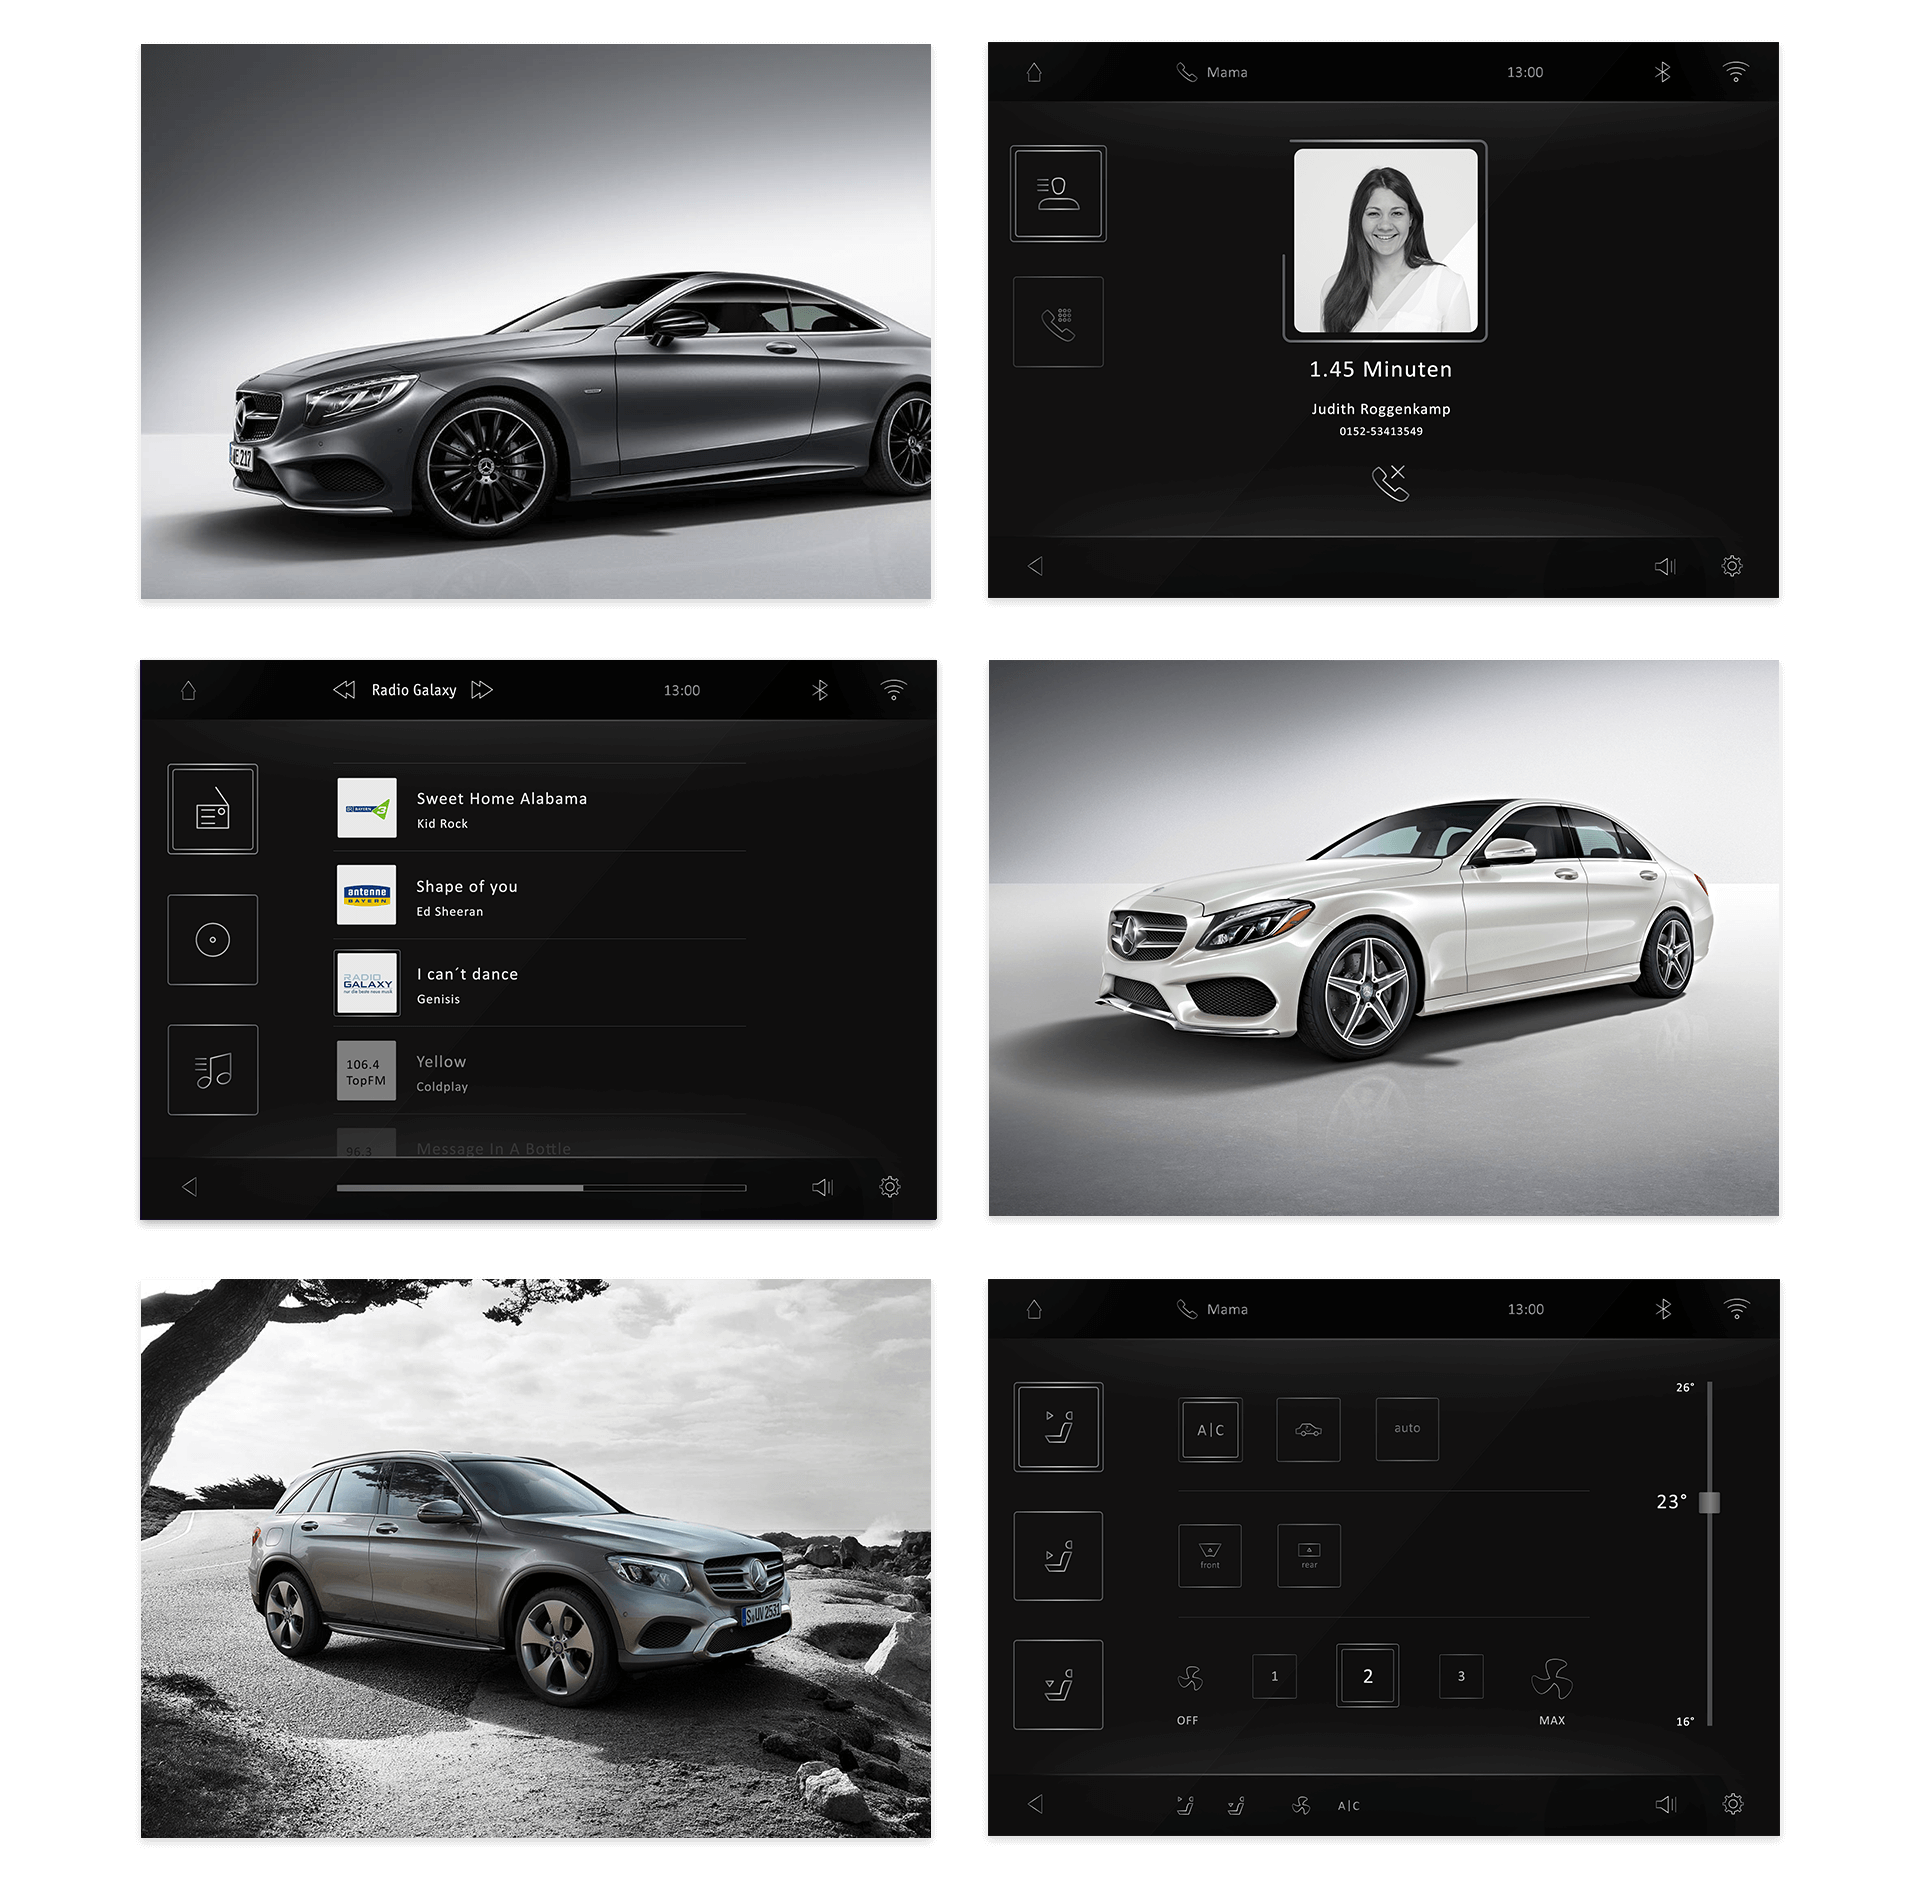 mercedes_screendesign_uebersicht